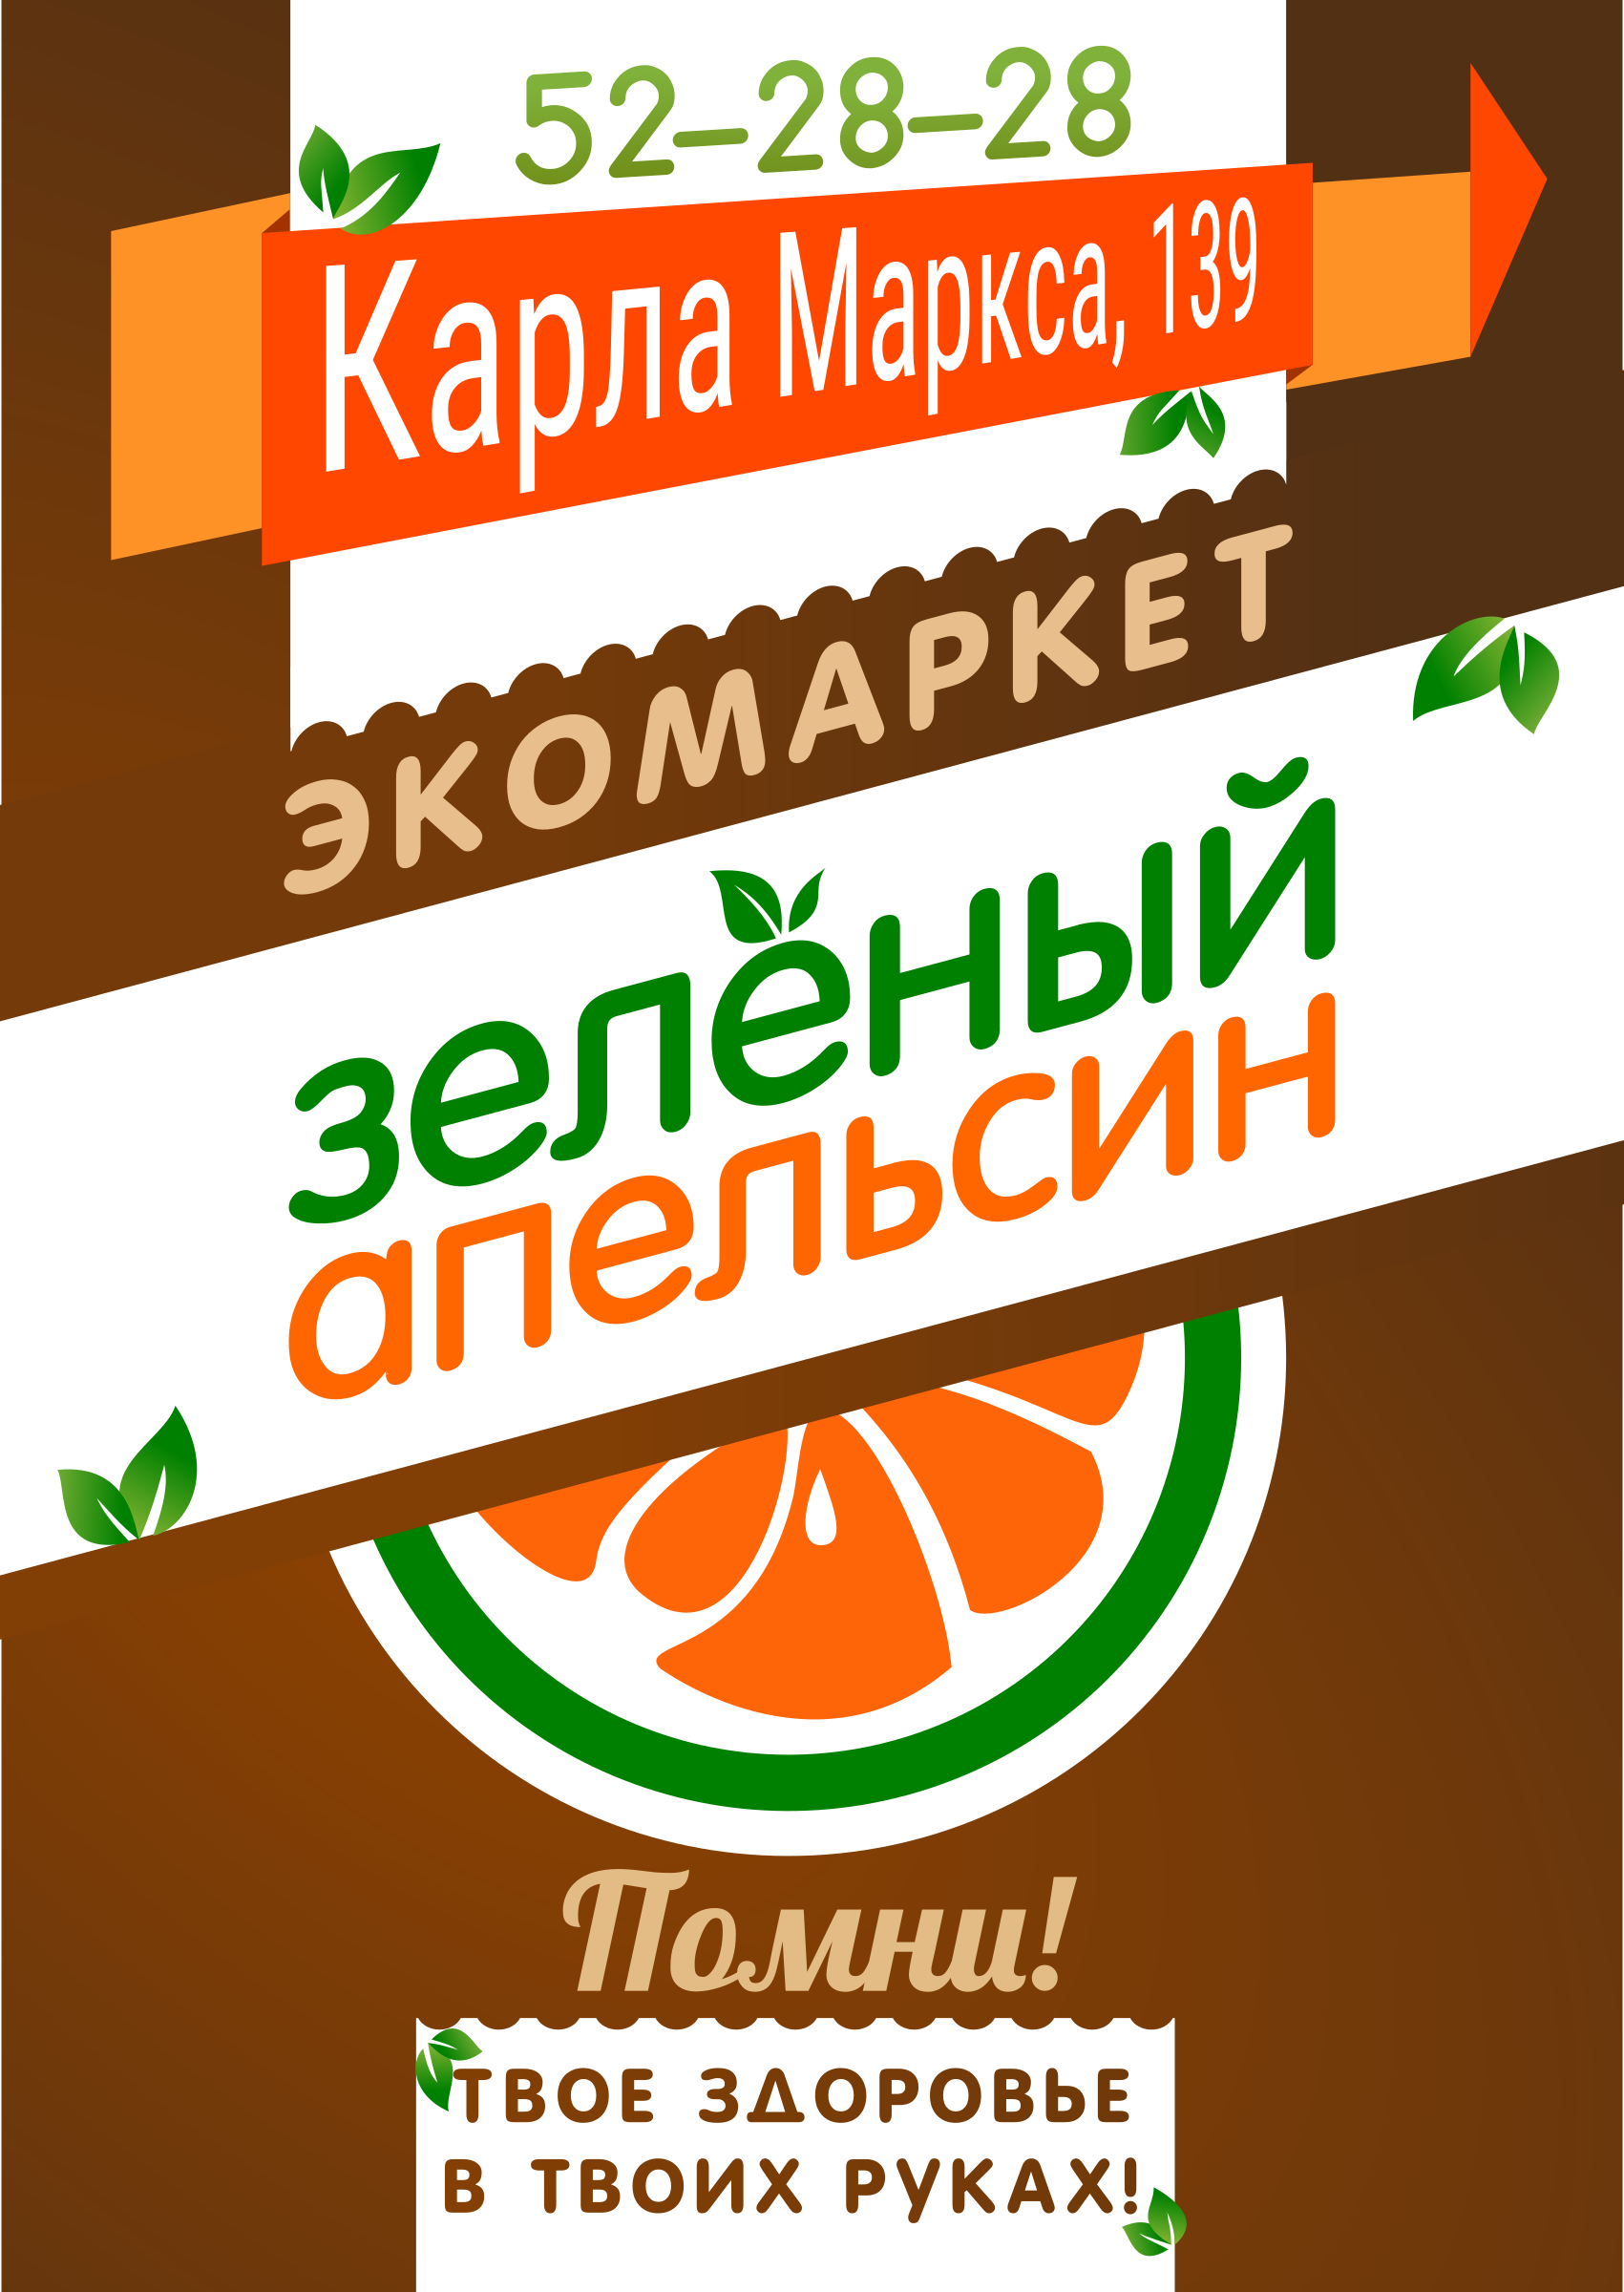 Advertising flyer for ecomarket Green Orange. by lunick